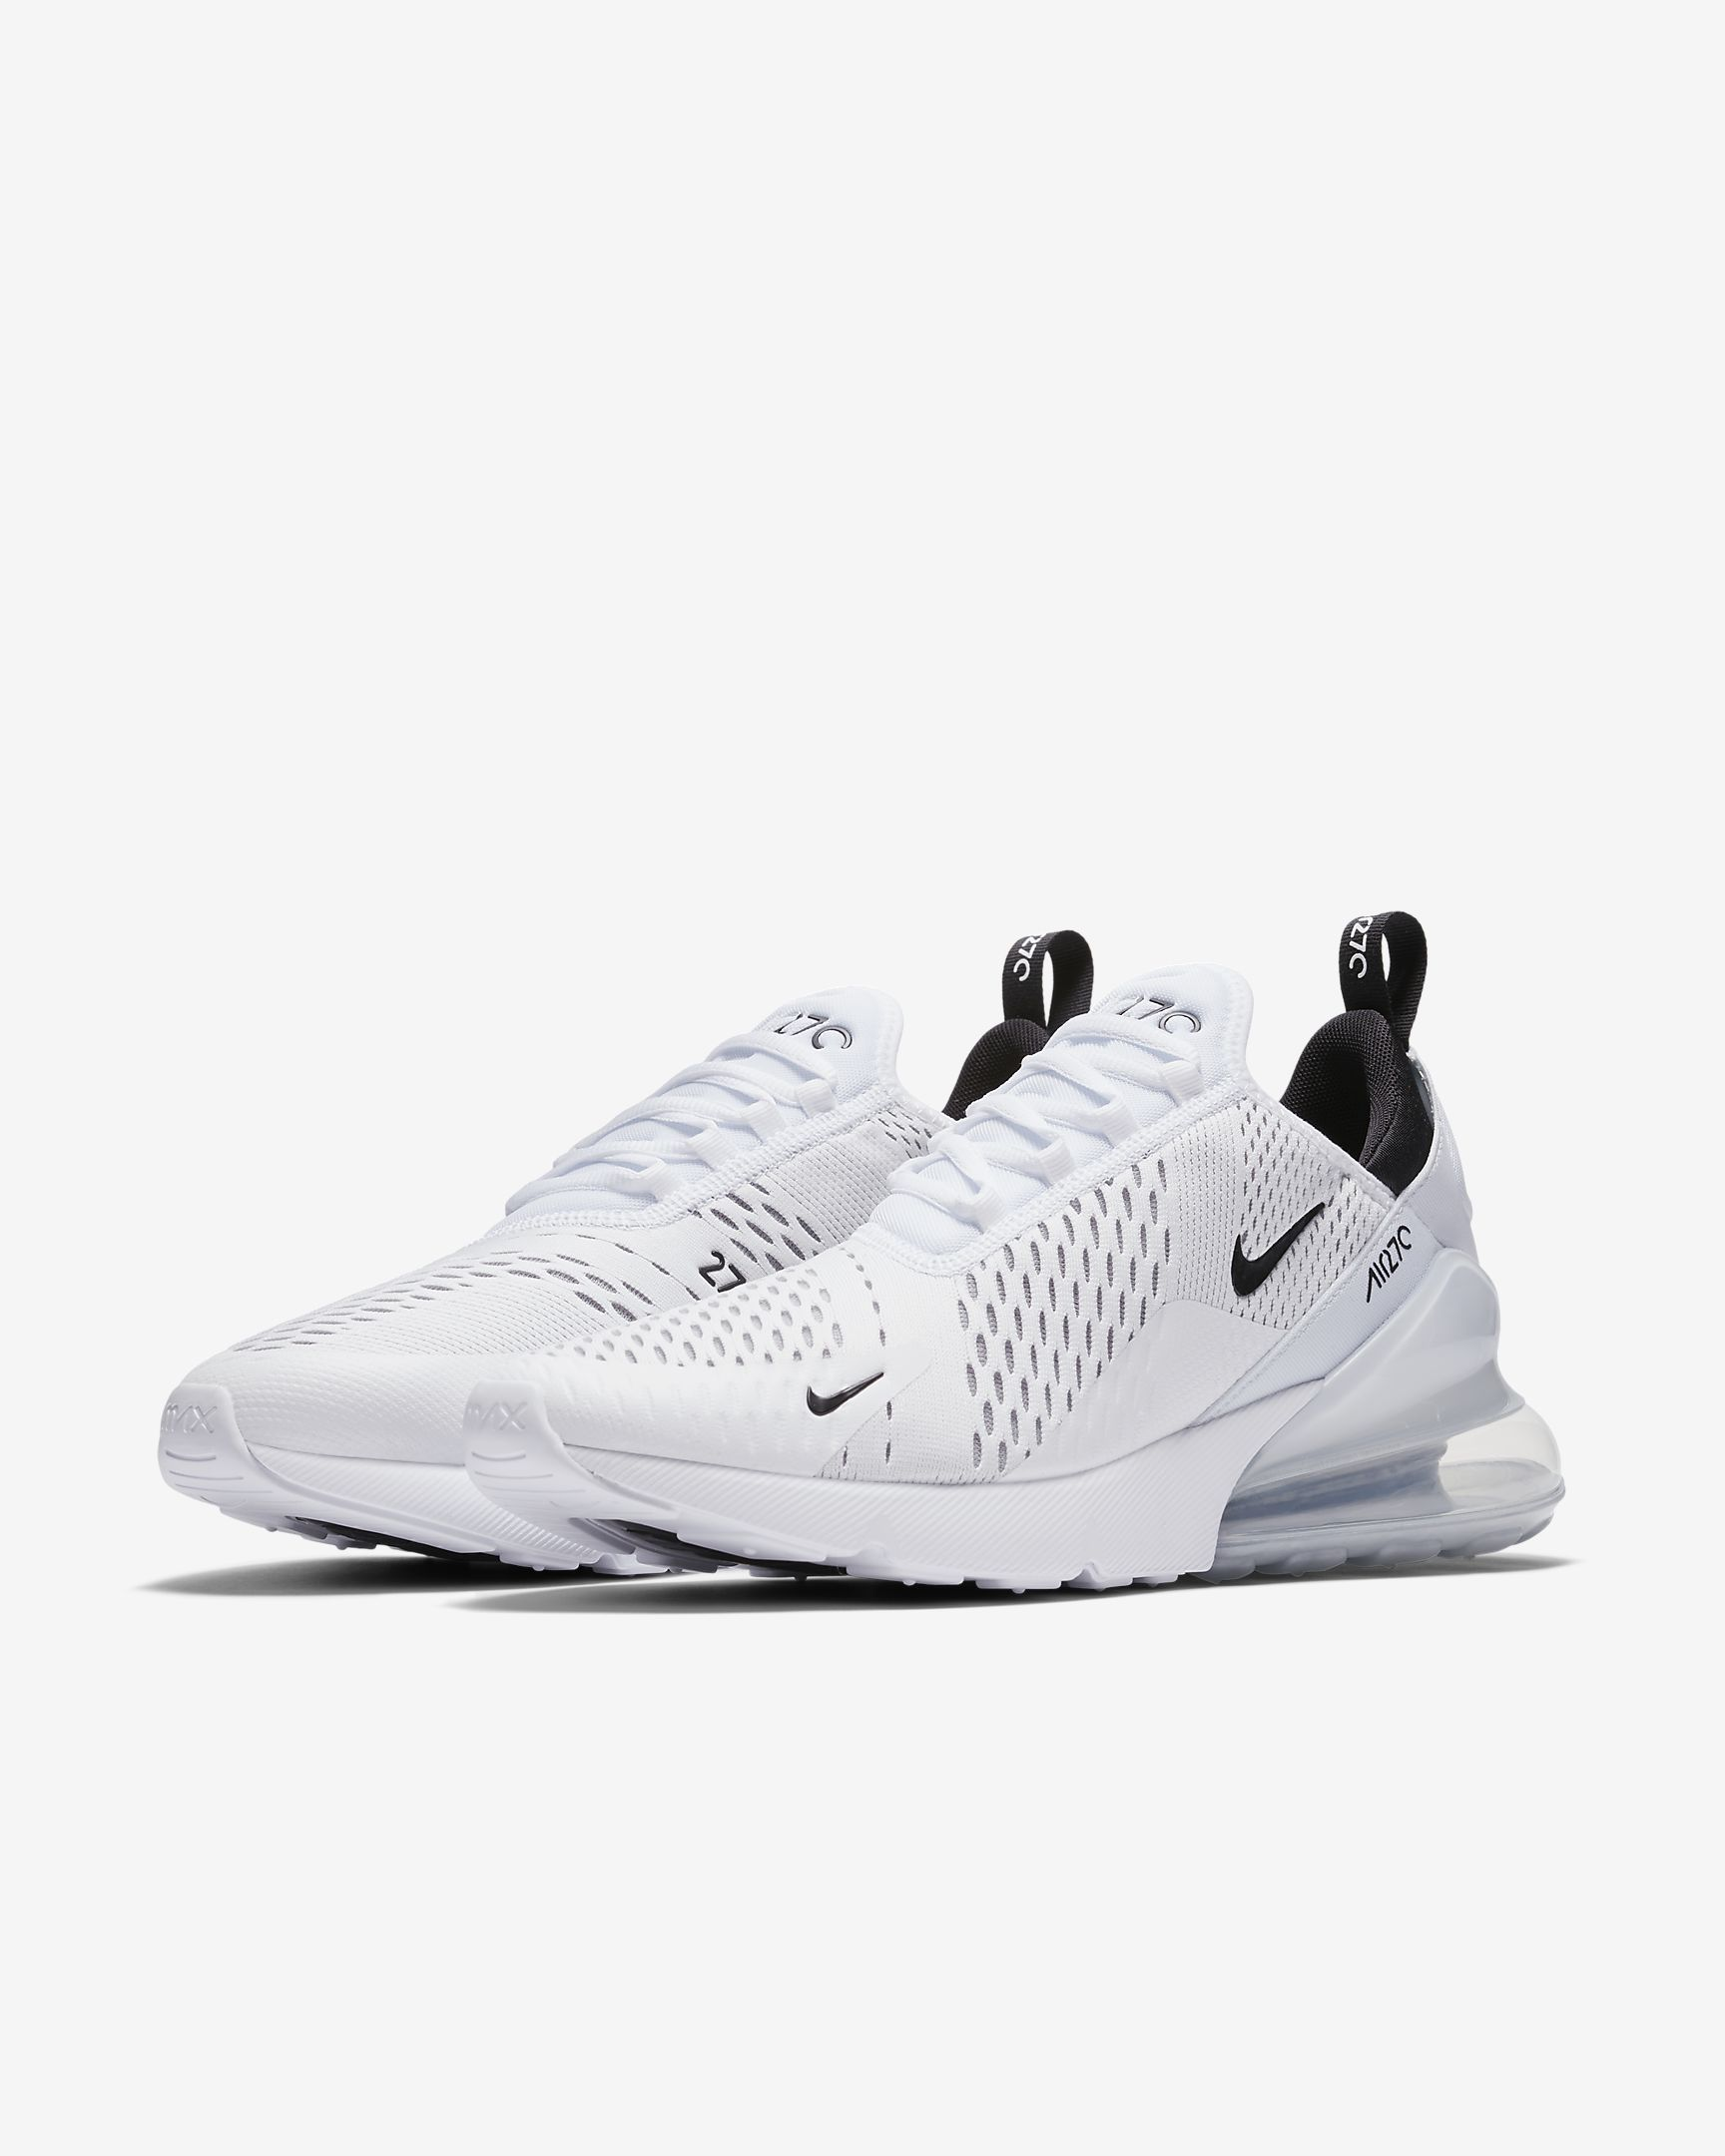 Nike Air Max 270 White  Black Sku  Ah8050